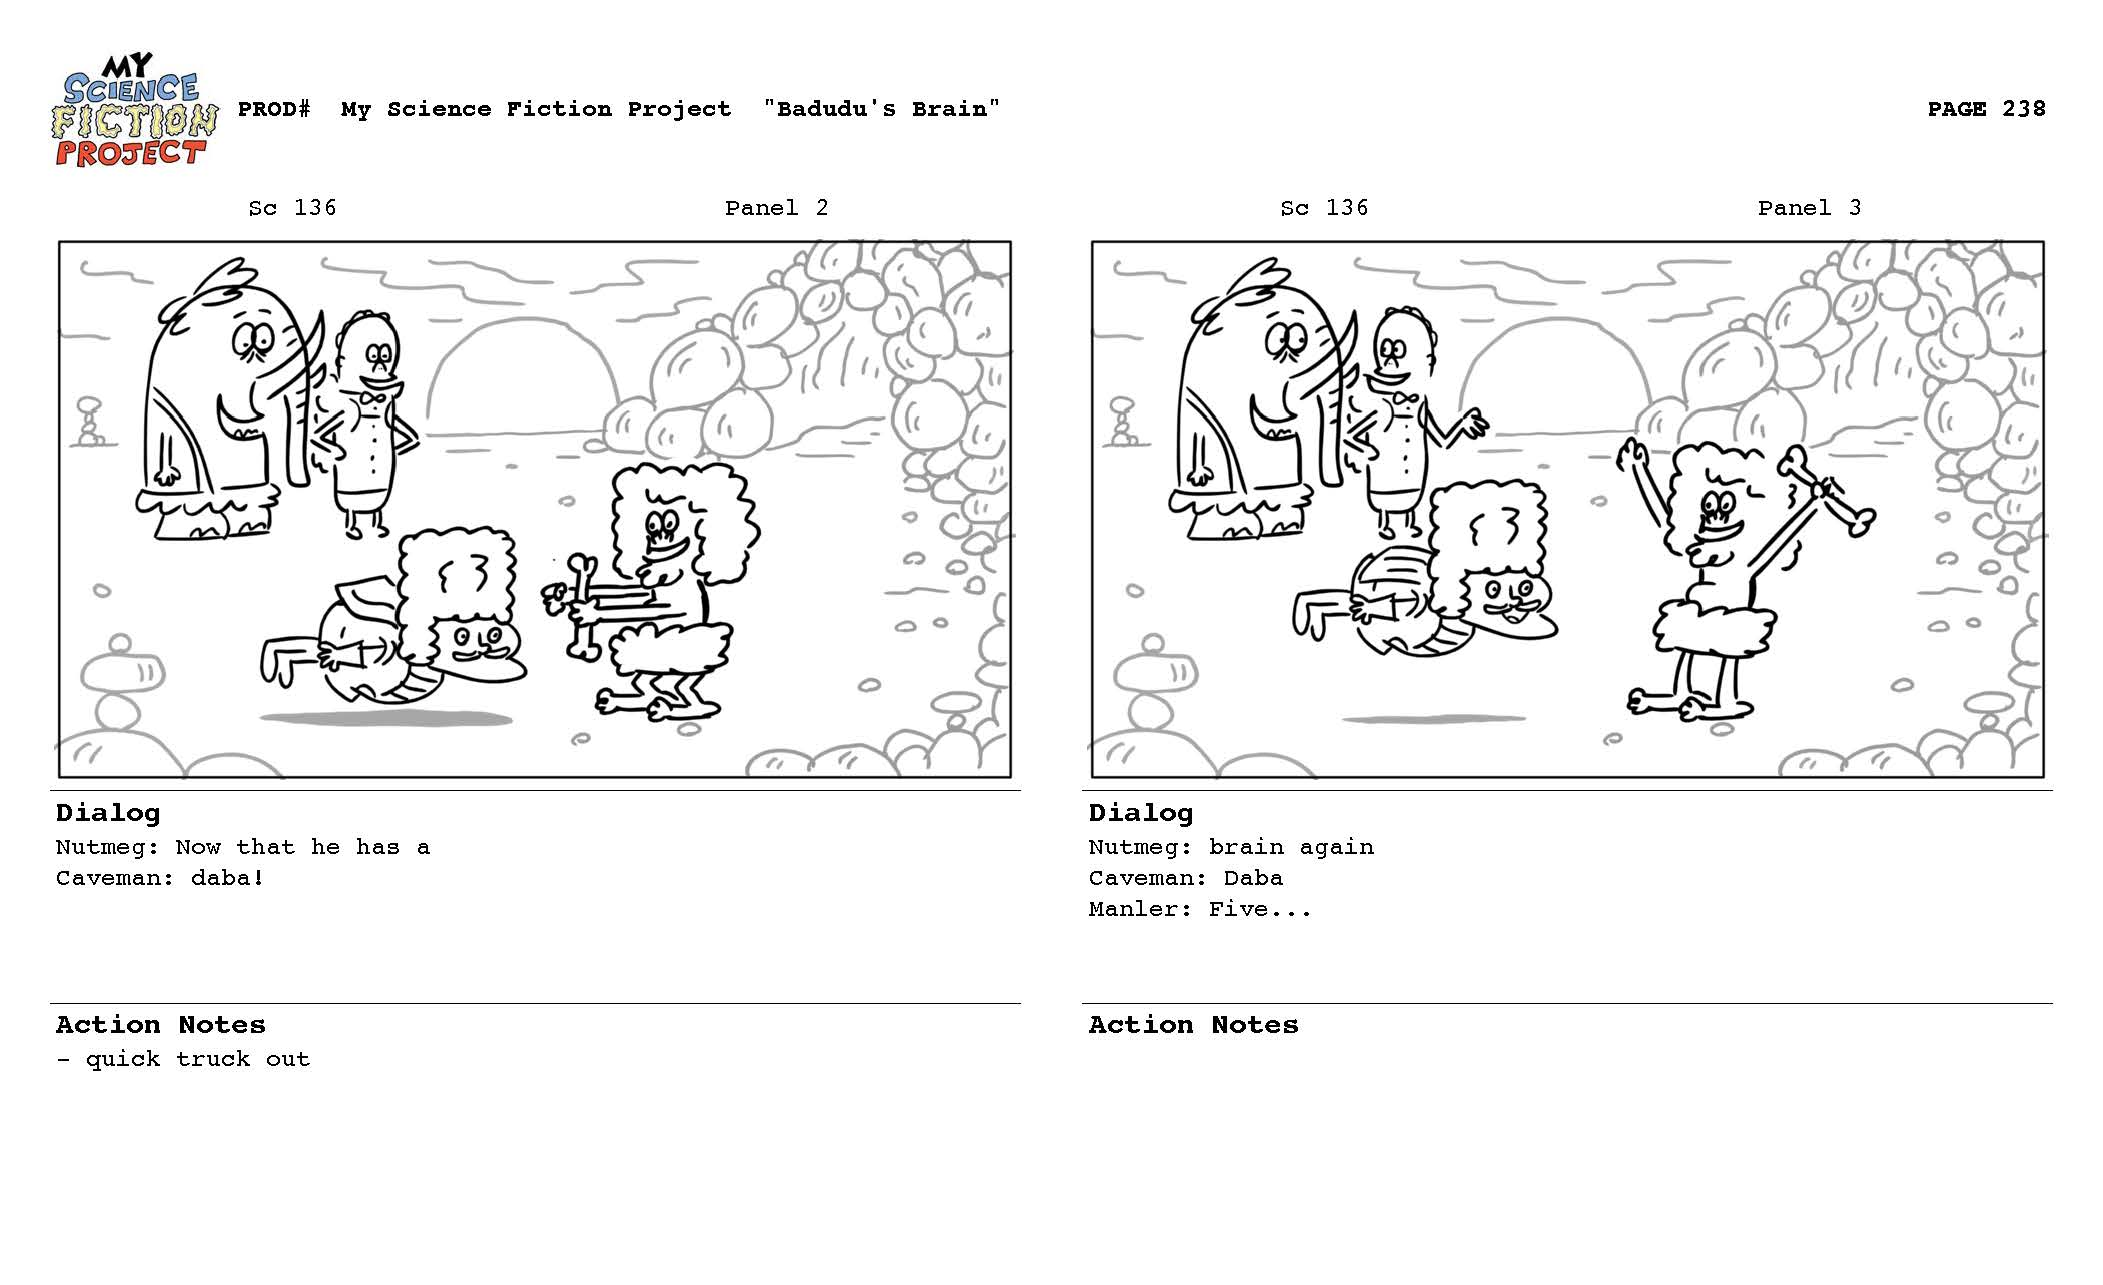 My_Science_Fiction_Project_SB_083112_reduced_Page_238.jpg